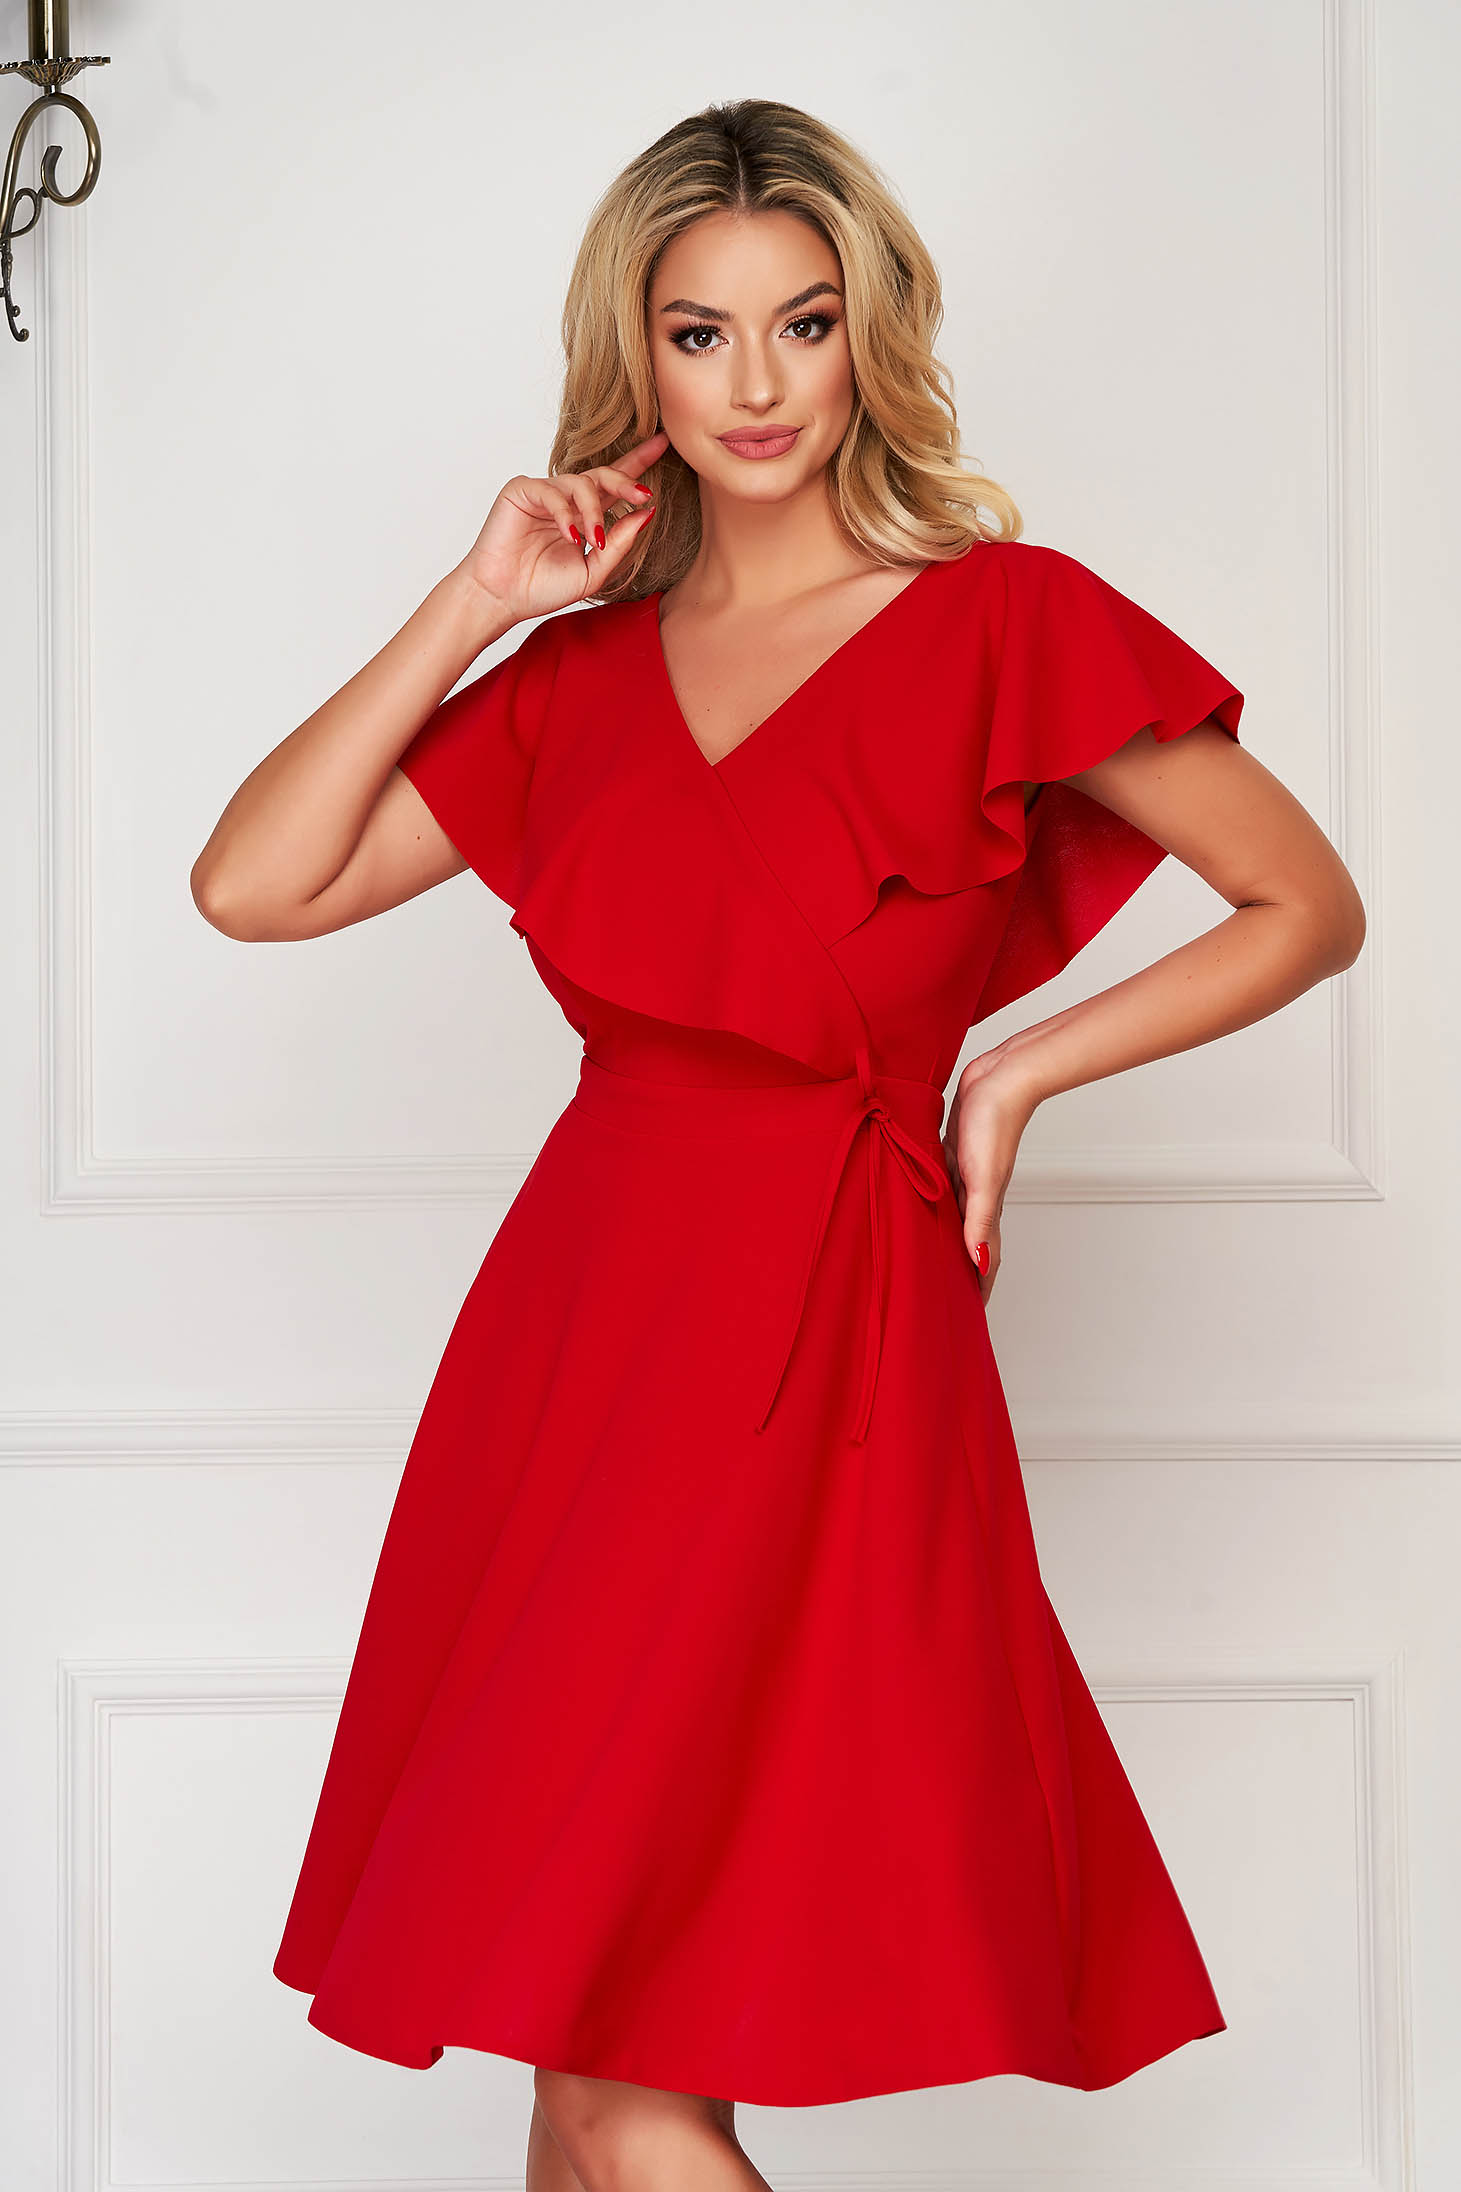 StarShinerS red dress daily short cut cloche scuba with v-neckline without clothing frilly trim around cleavage line